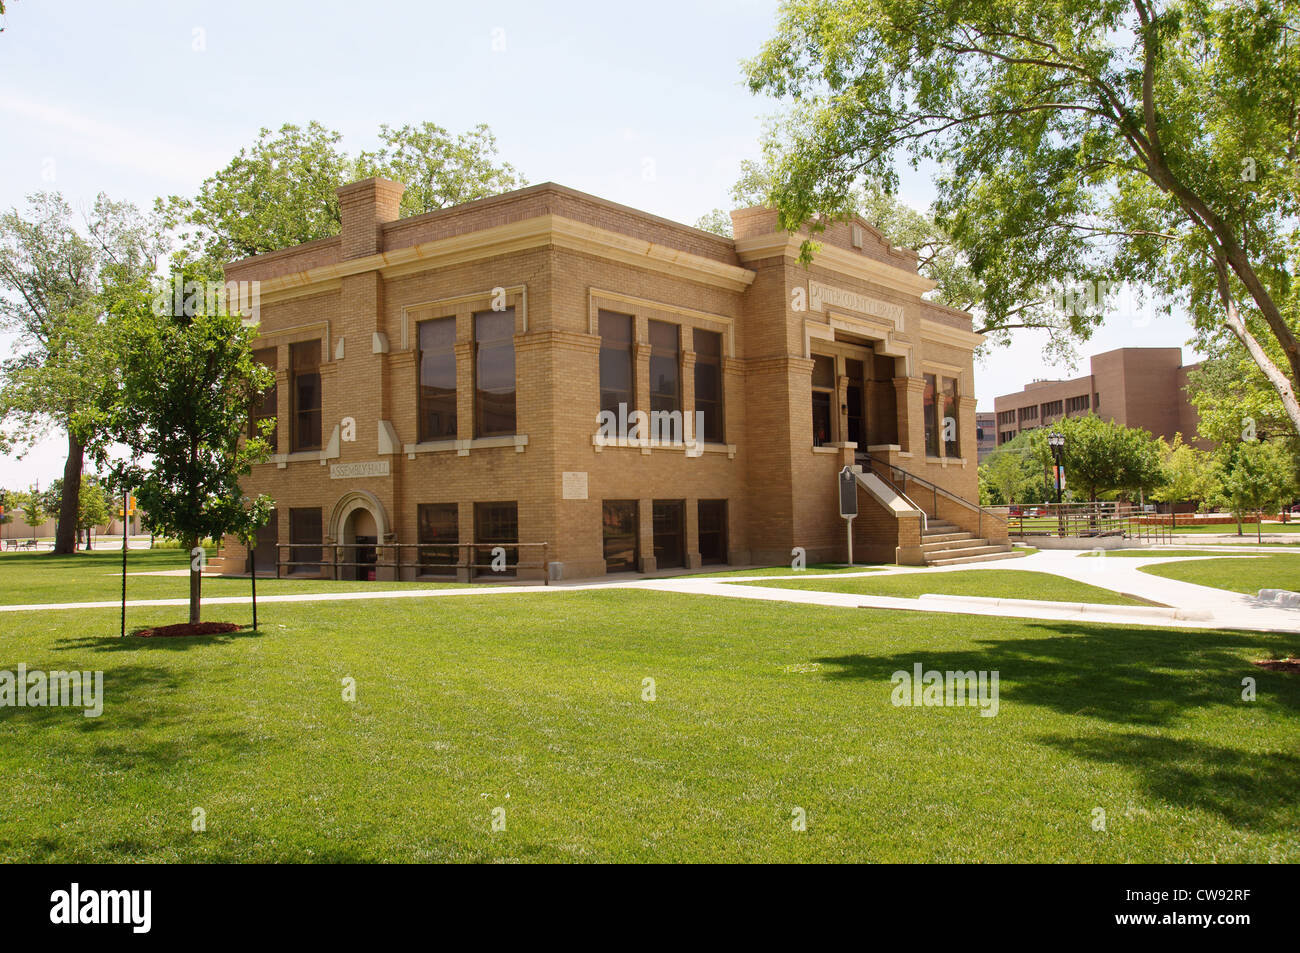 Amarillo Texas Scenic Stock Photos & Amarillo Texas Scenic Stock ...